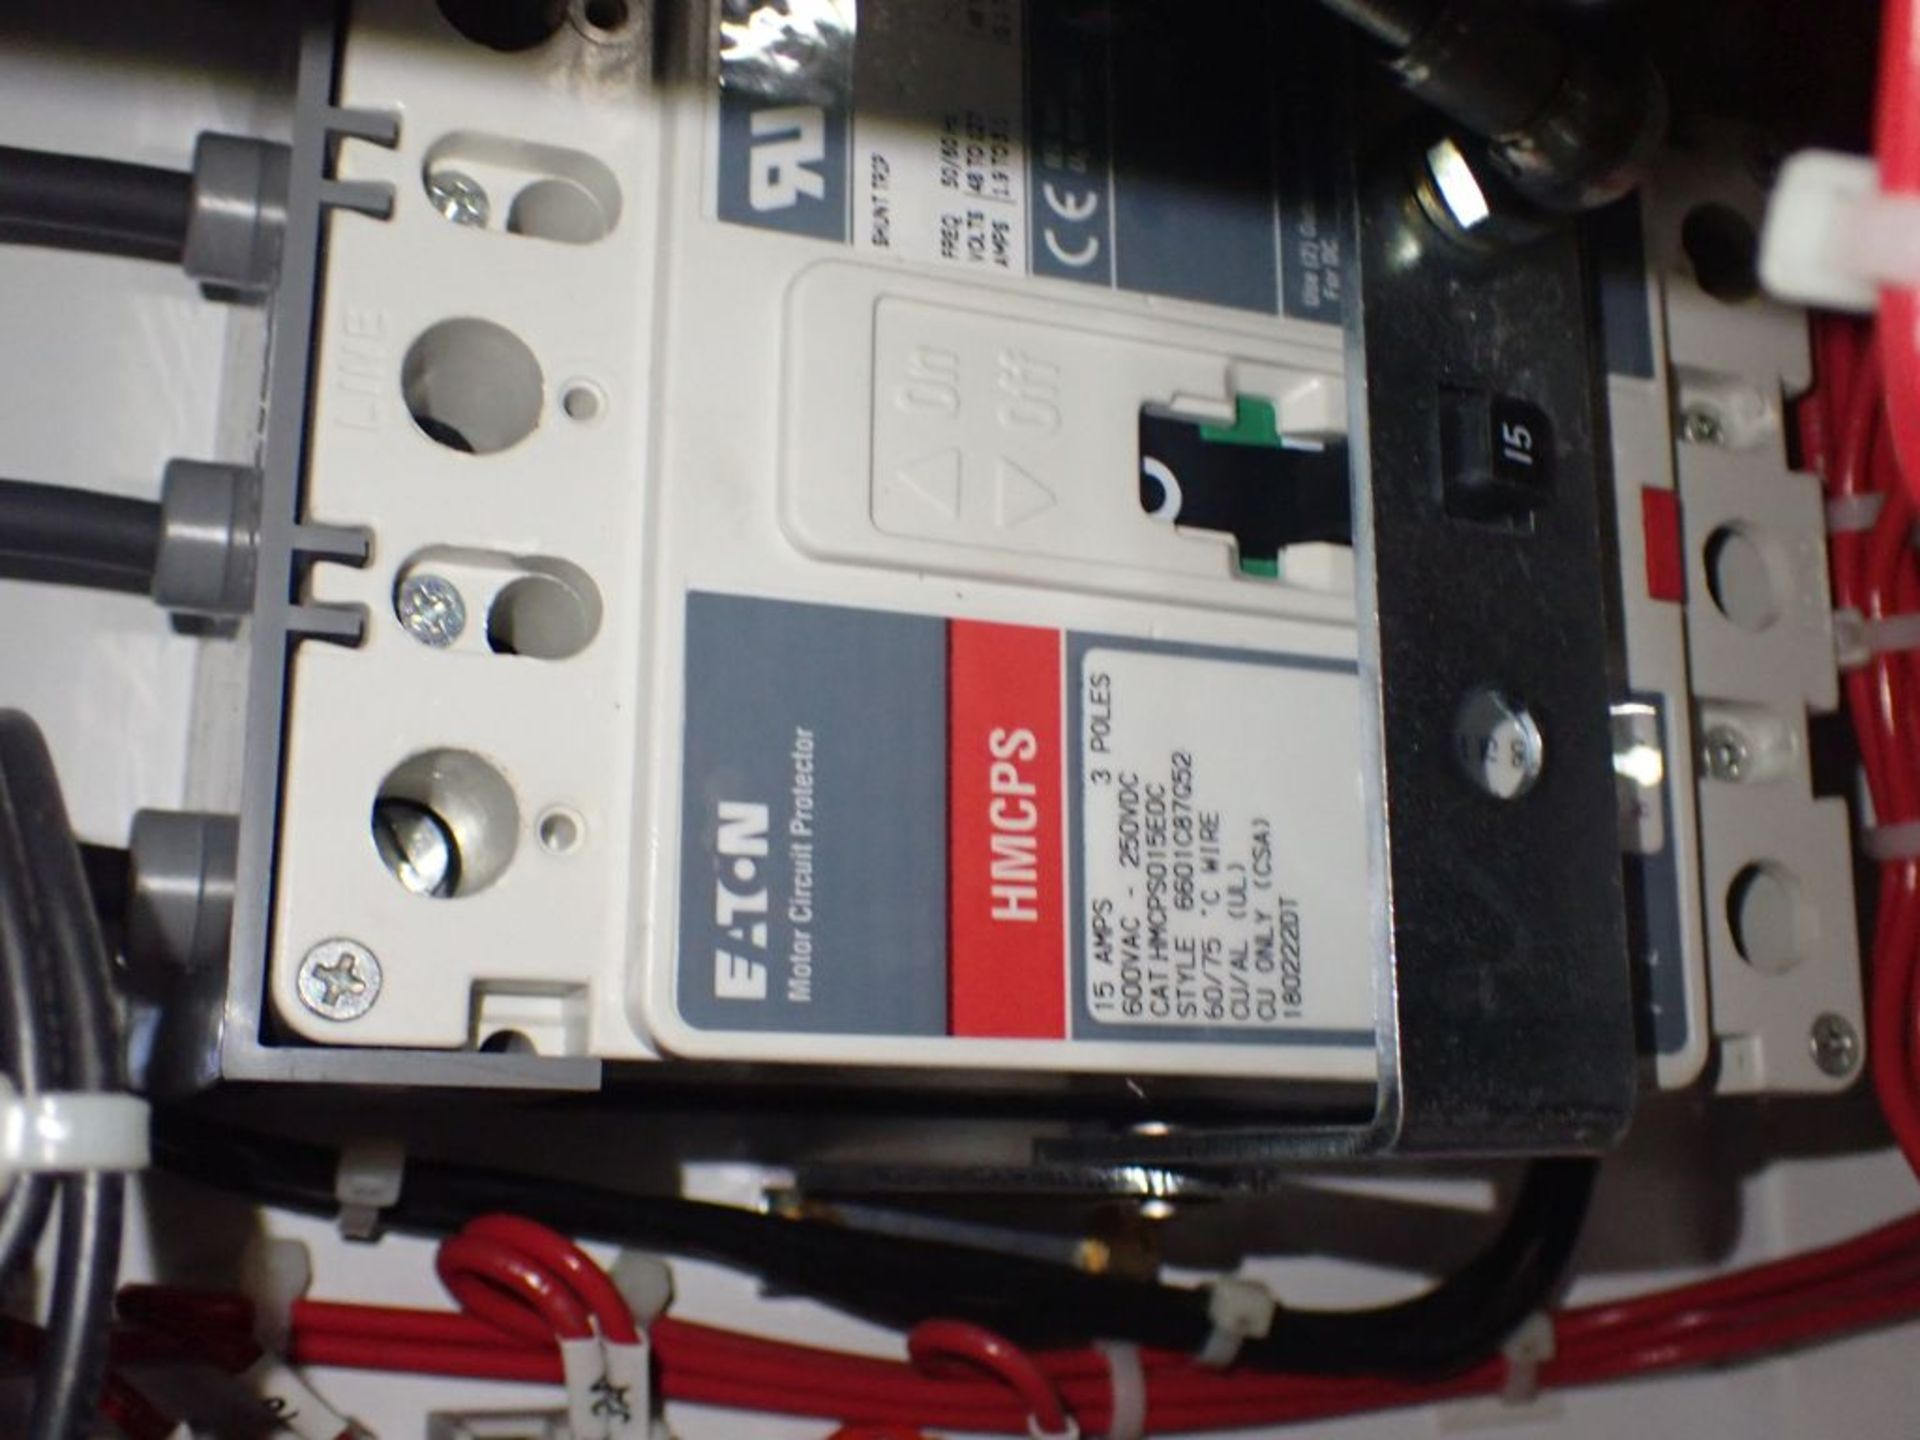 Eaton Freedom 2100 Series Motor Control Center   (2) F206-15A-10HP; (2) SVX900-50A, with Eaton AF - Image 18 of 48